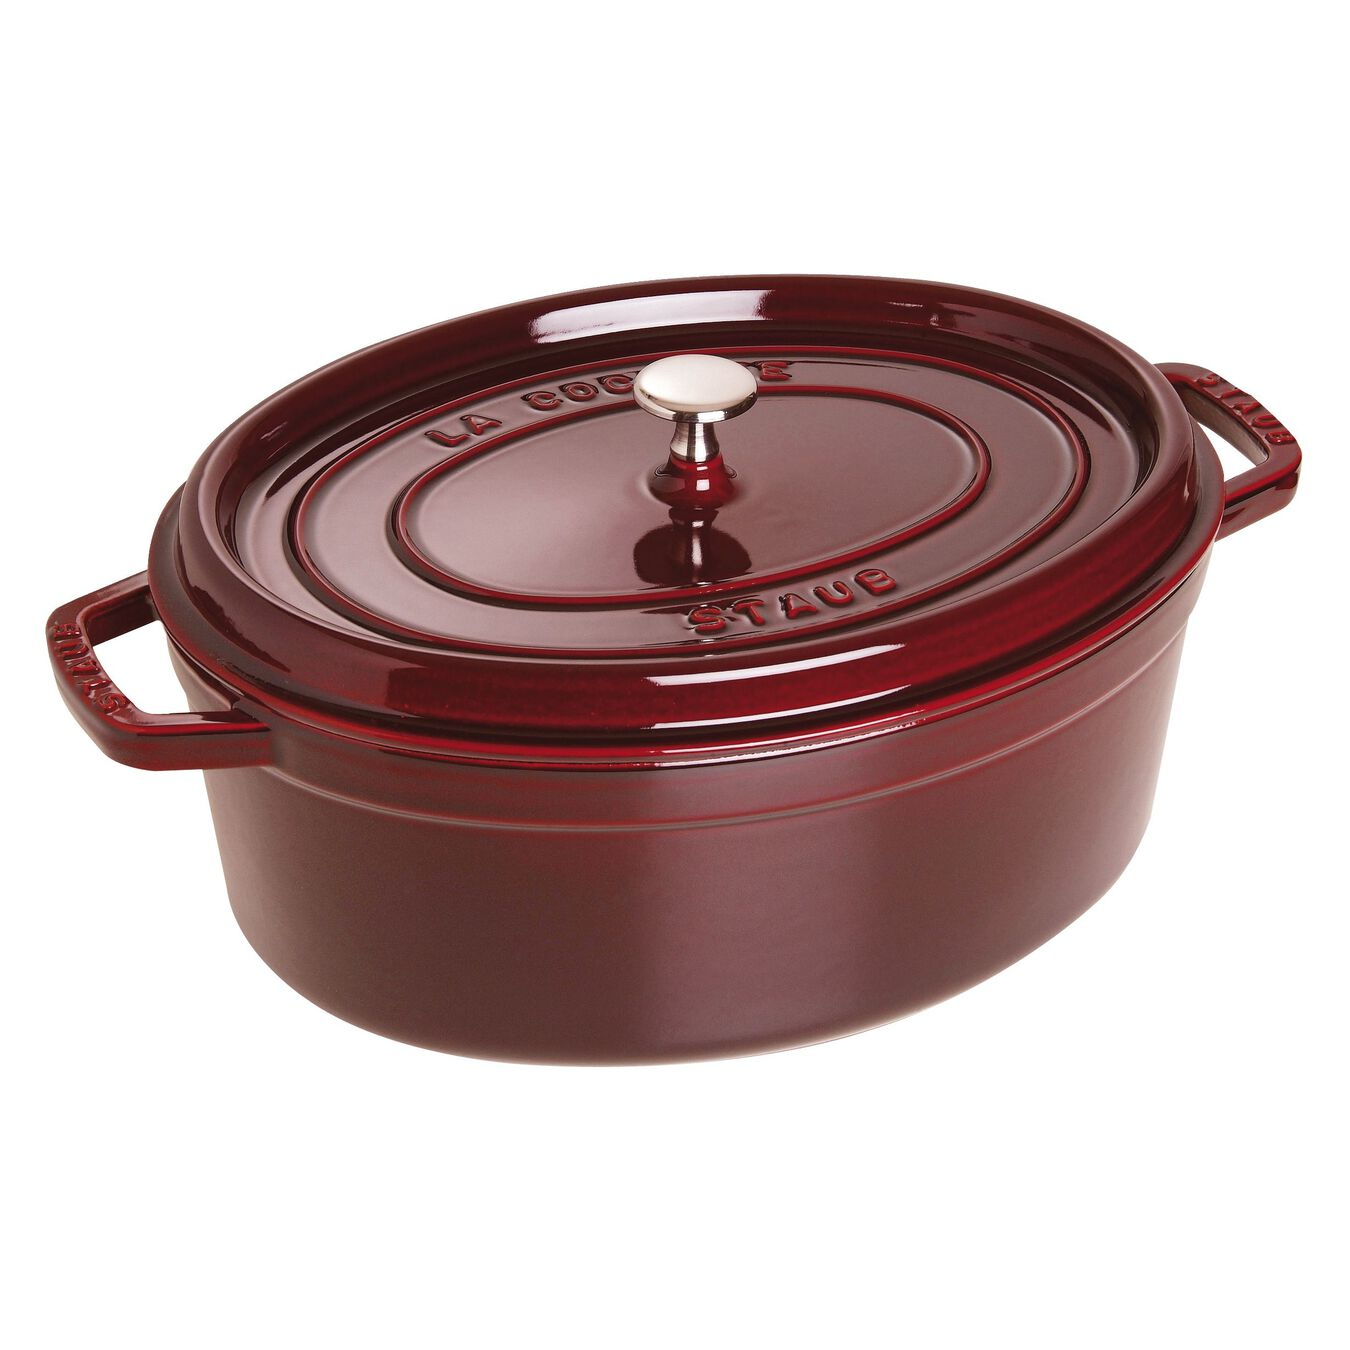 Cocotte 33 cm, oval, Grenadine-Rot, Gusseisen,,large 1